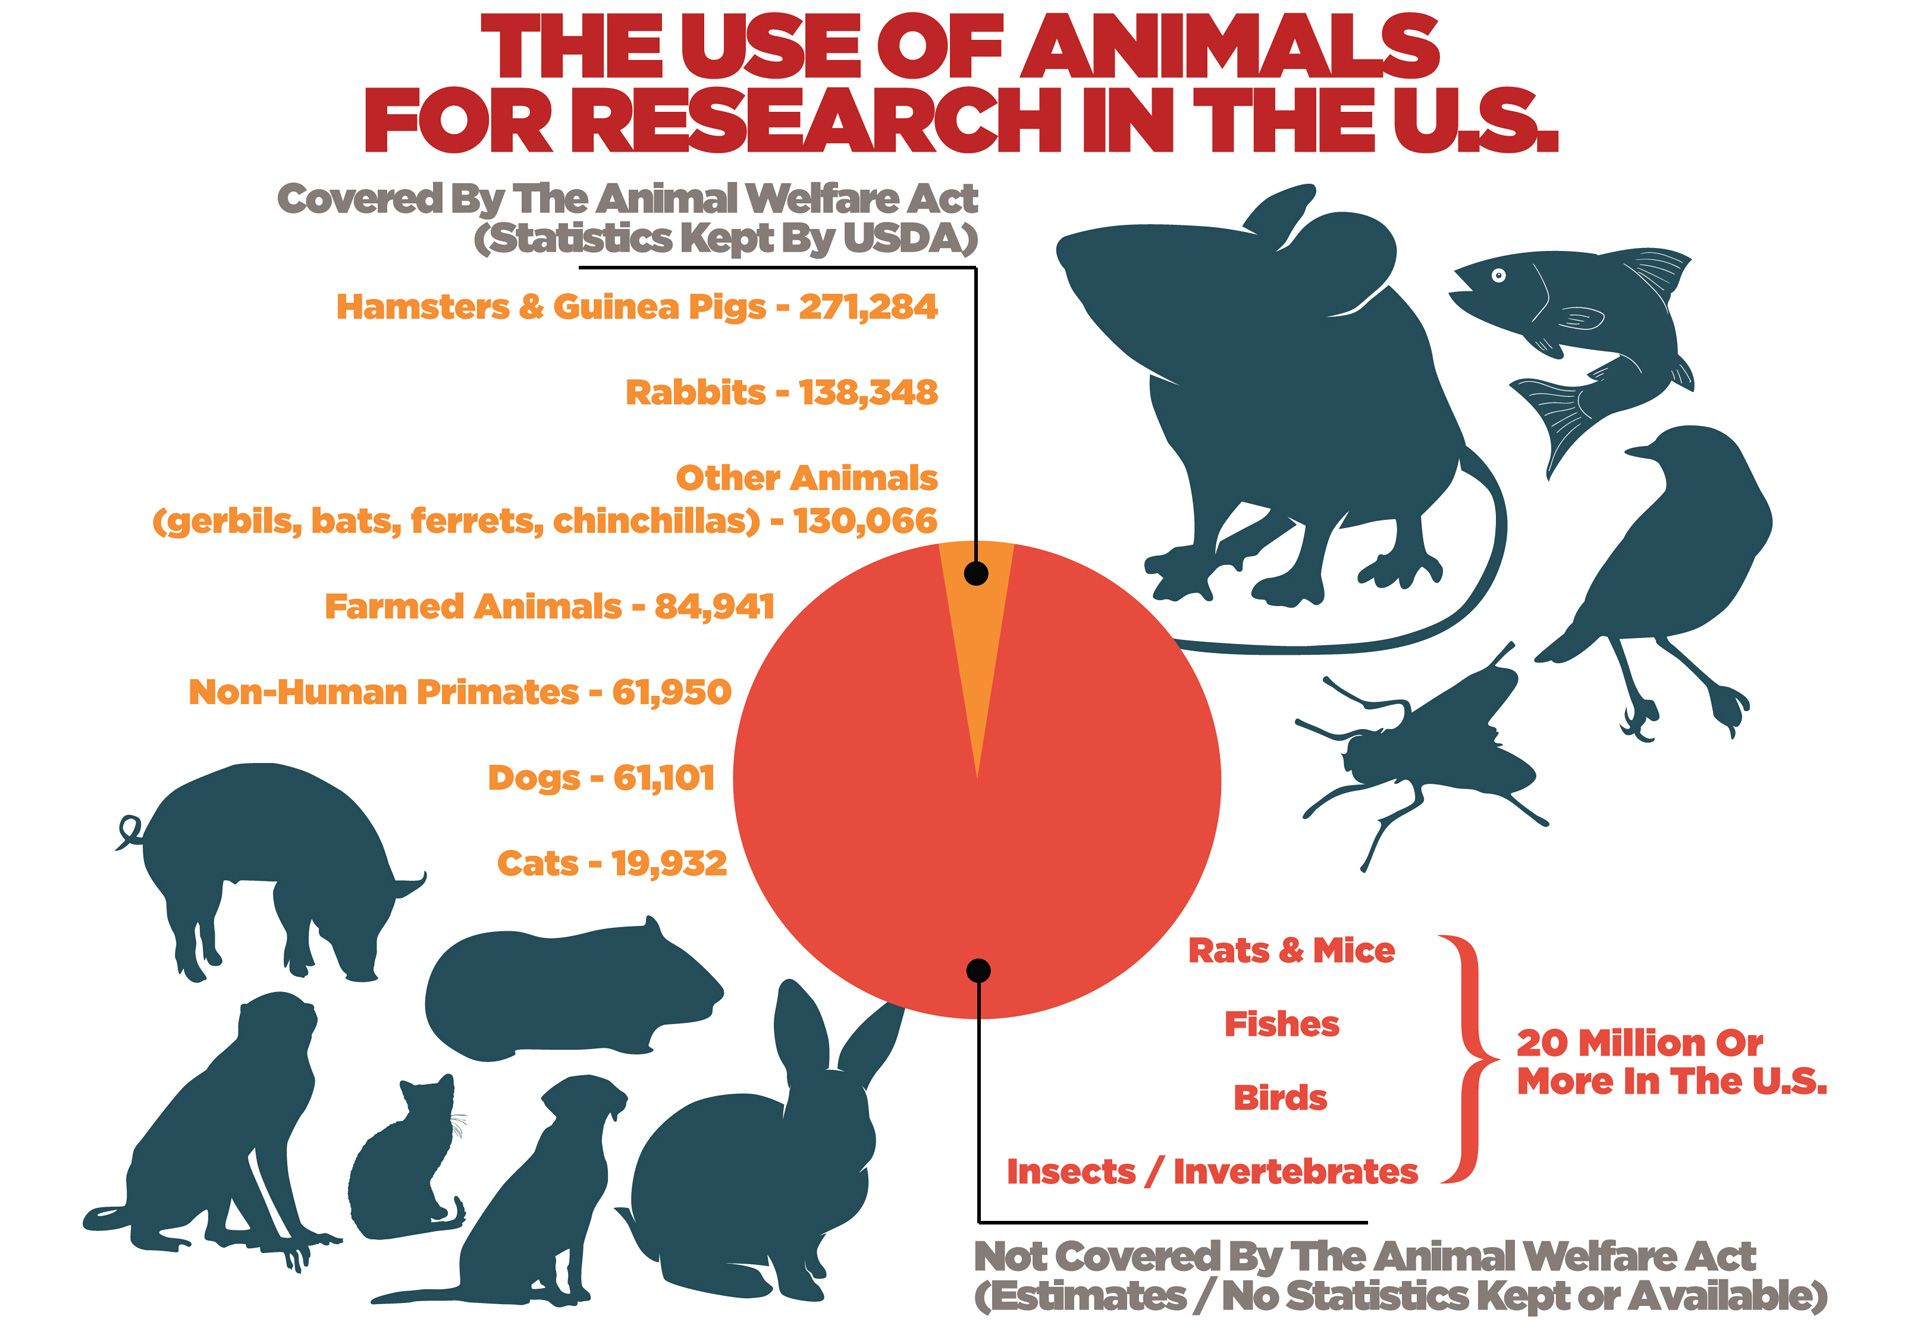 Research Animal Fundamentals Via Faunalytics 2017 Information And Statistics About The Use Of Animals Animal Welfare Act Animal Experiments Animal Advocacy